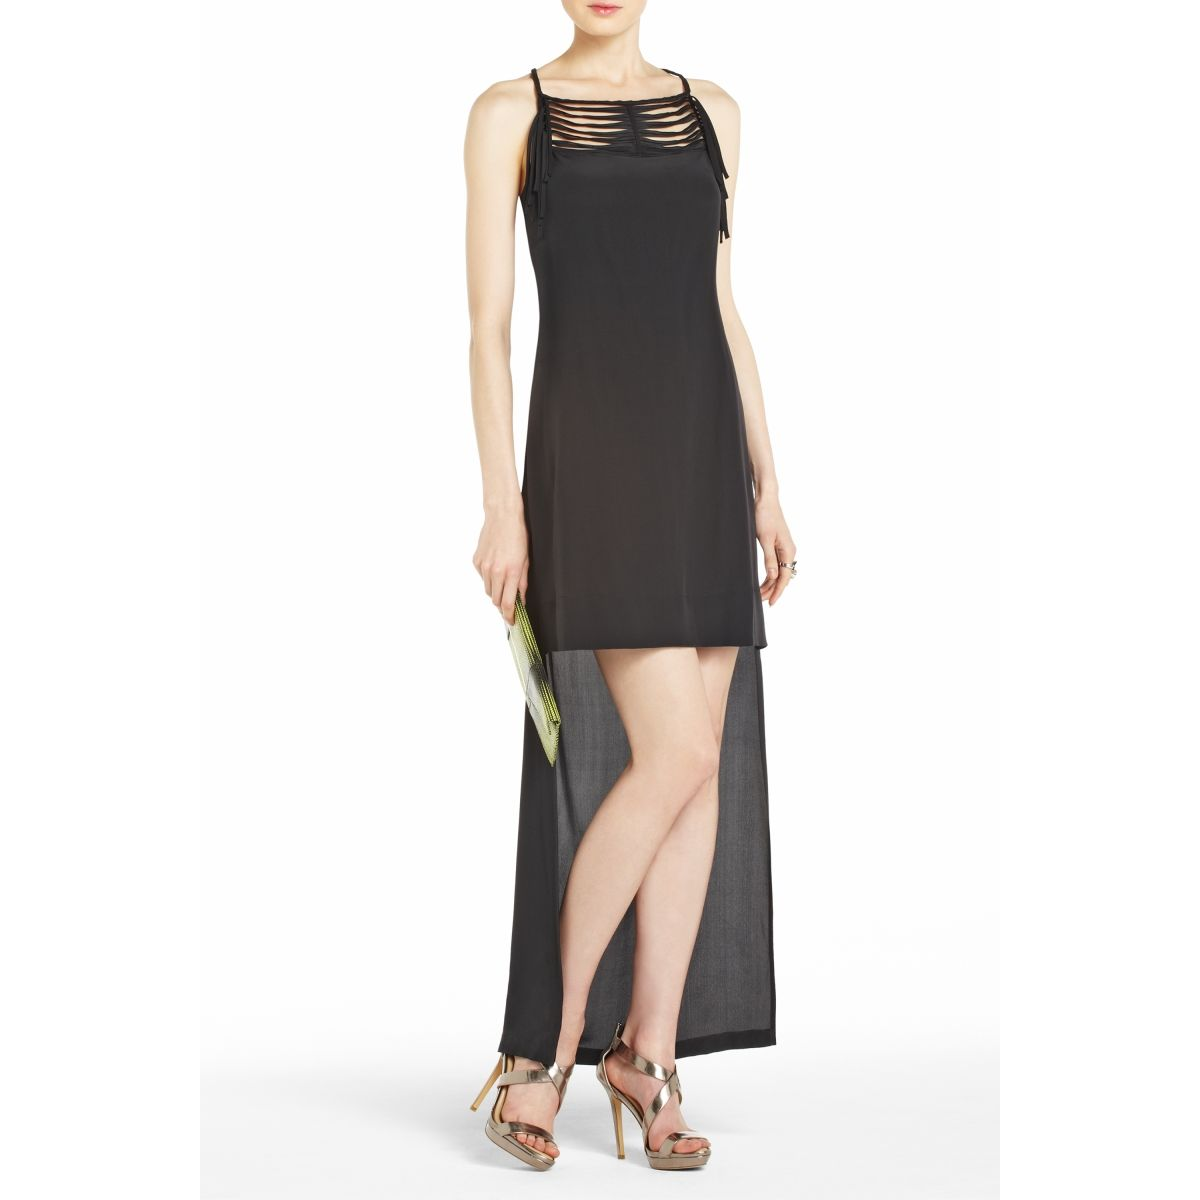 Bcbgmaxazria shop by category dresses view all tamsyn high low womens dresses gowns and designer clothing shop online ombrellifo Image collections